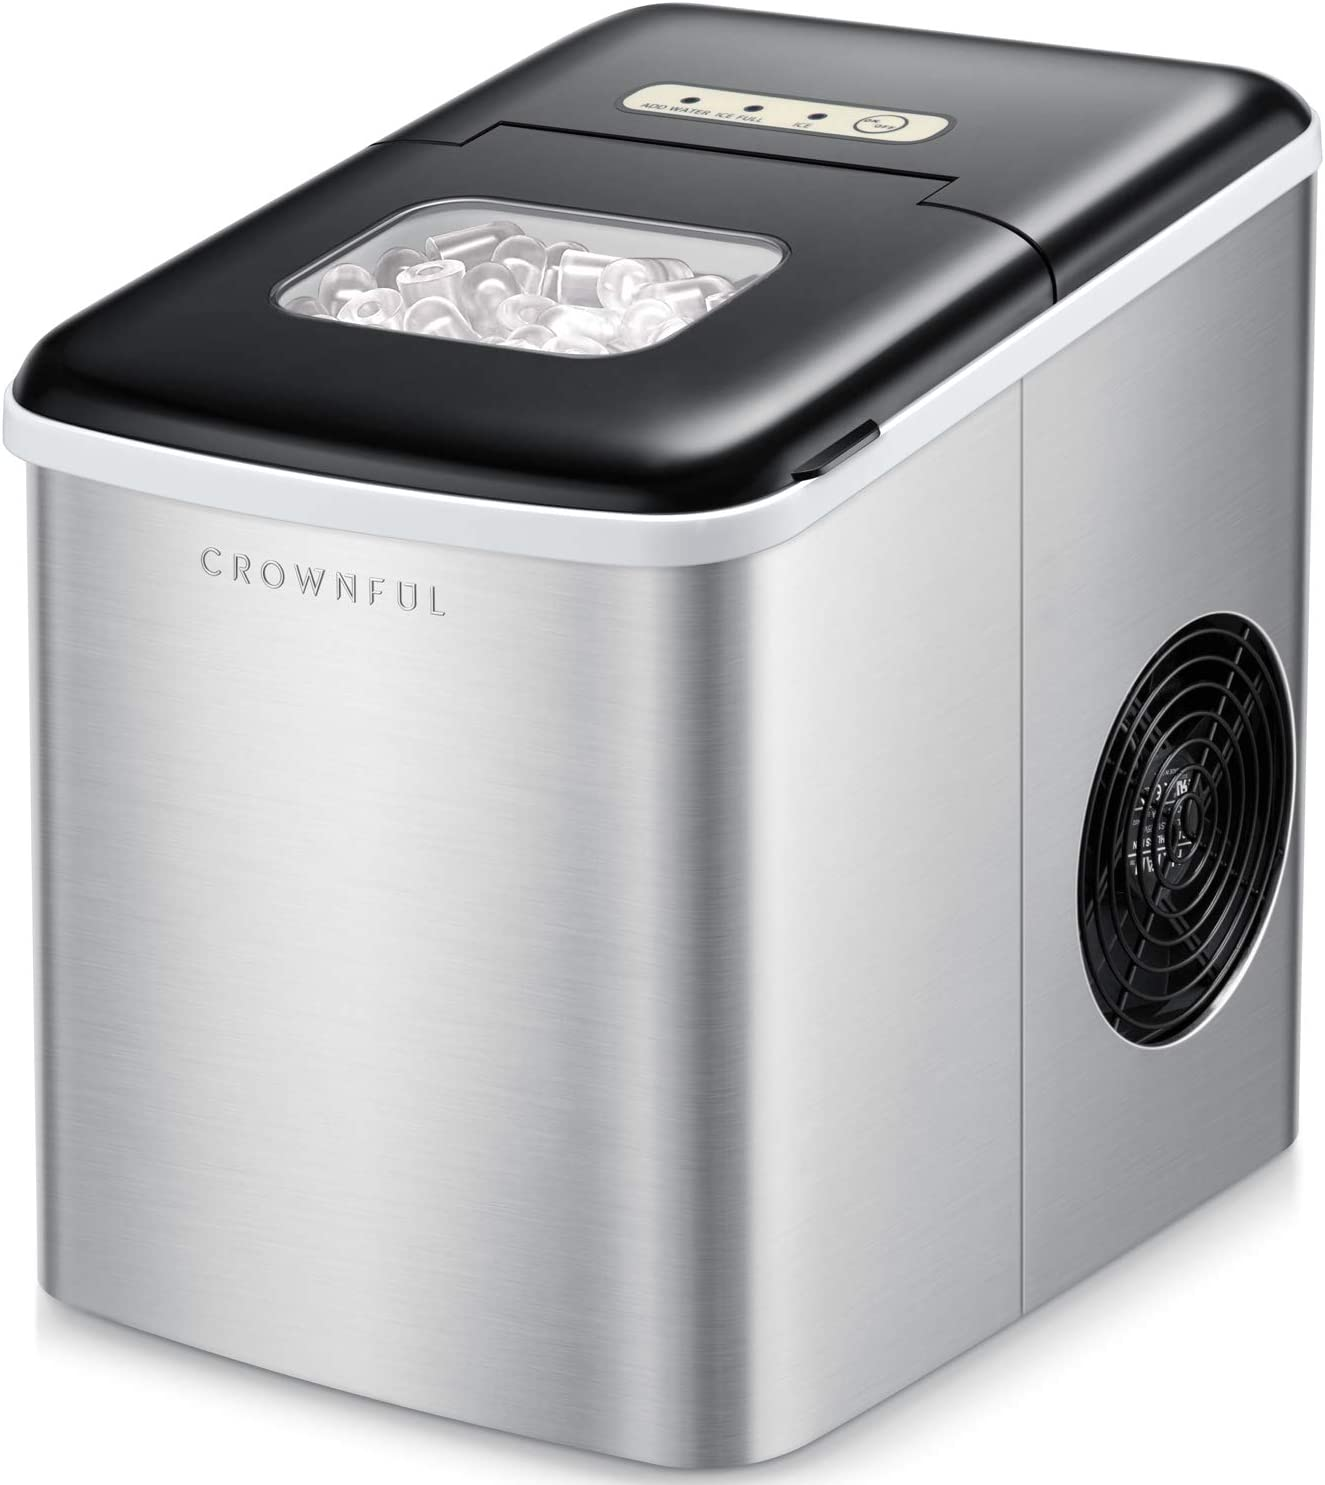 Crownful Ice Maker Machine for Countertop,